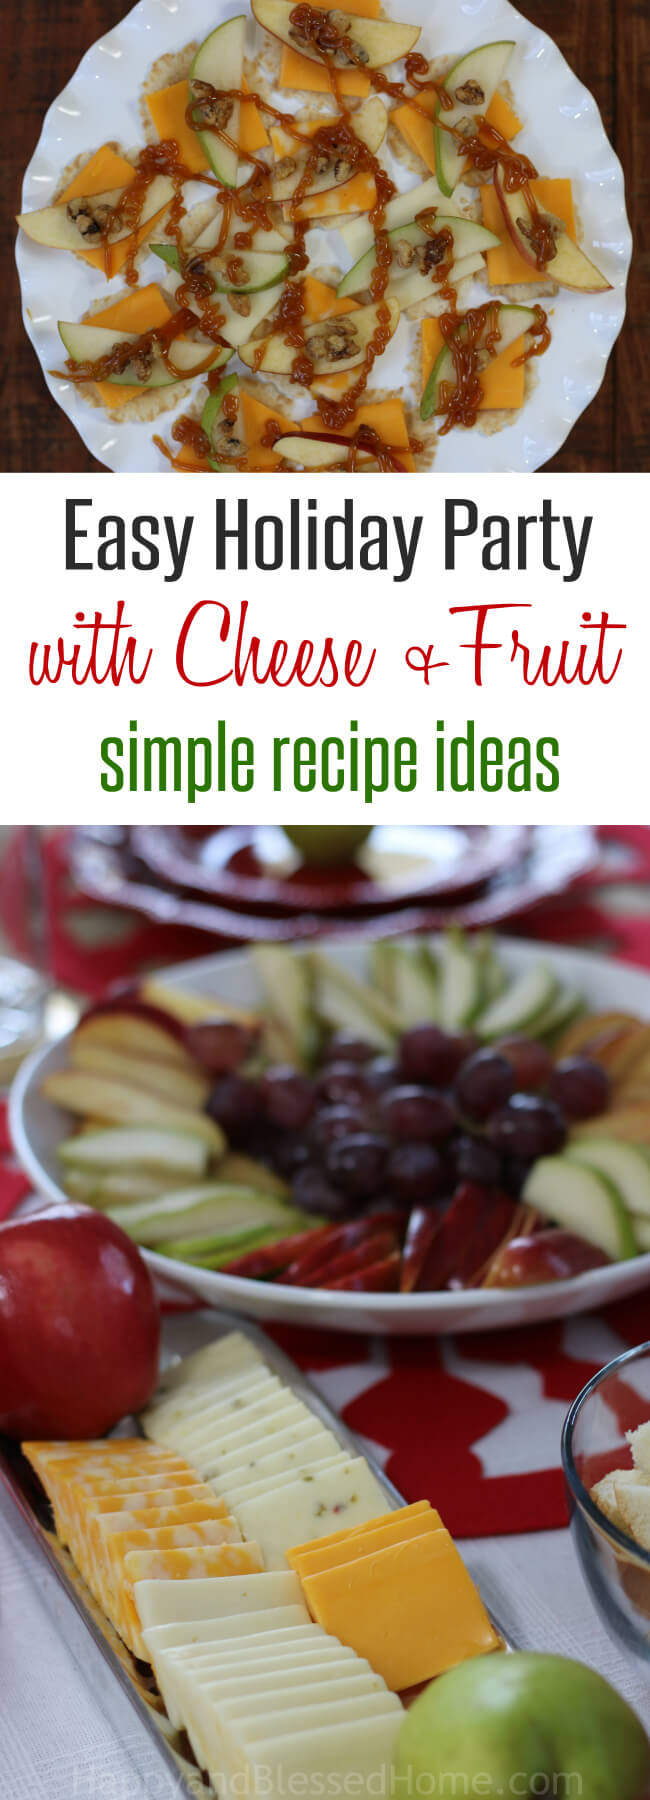 This makes for the easiest appetizer ever - love the fruit sauces she suggests!